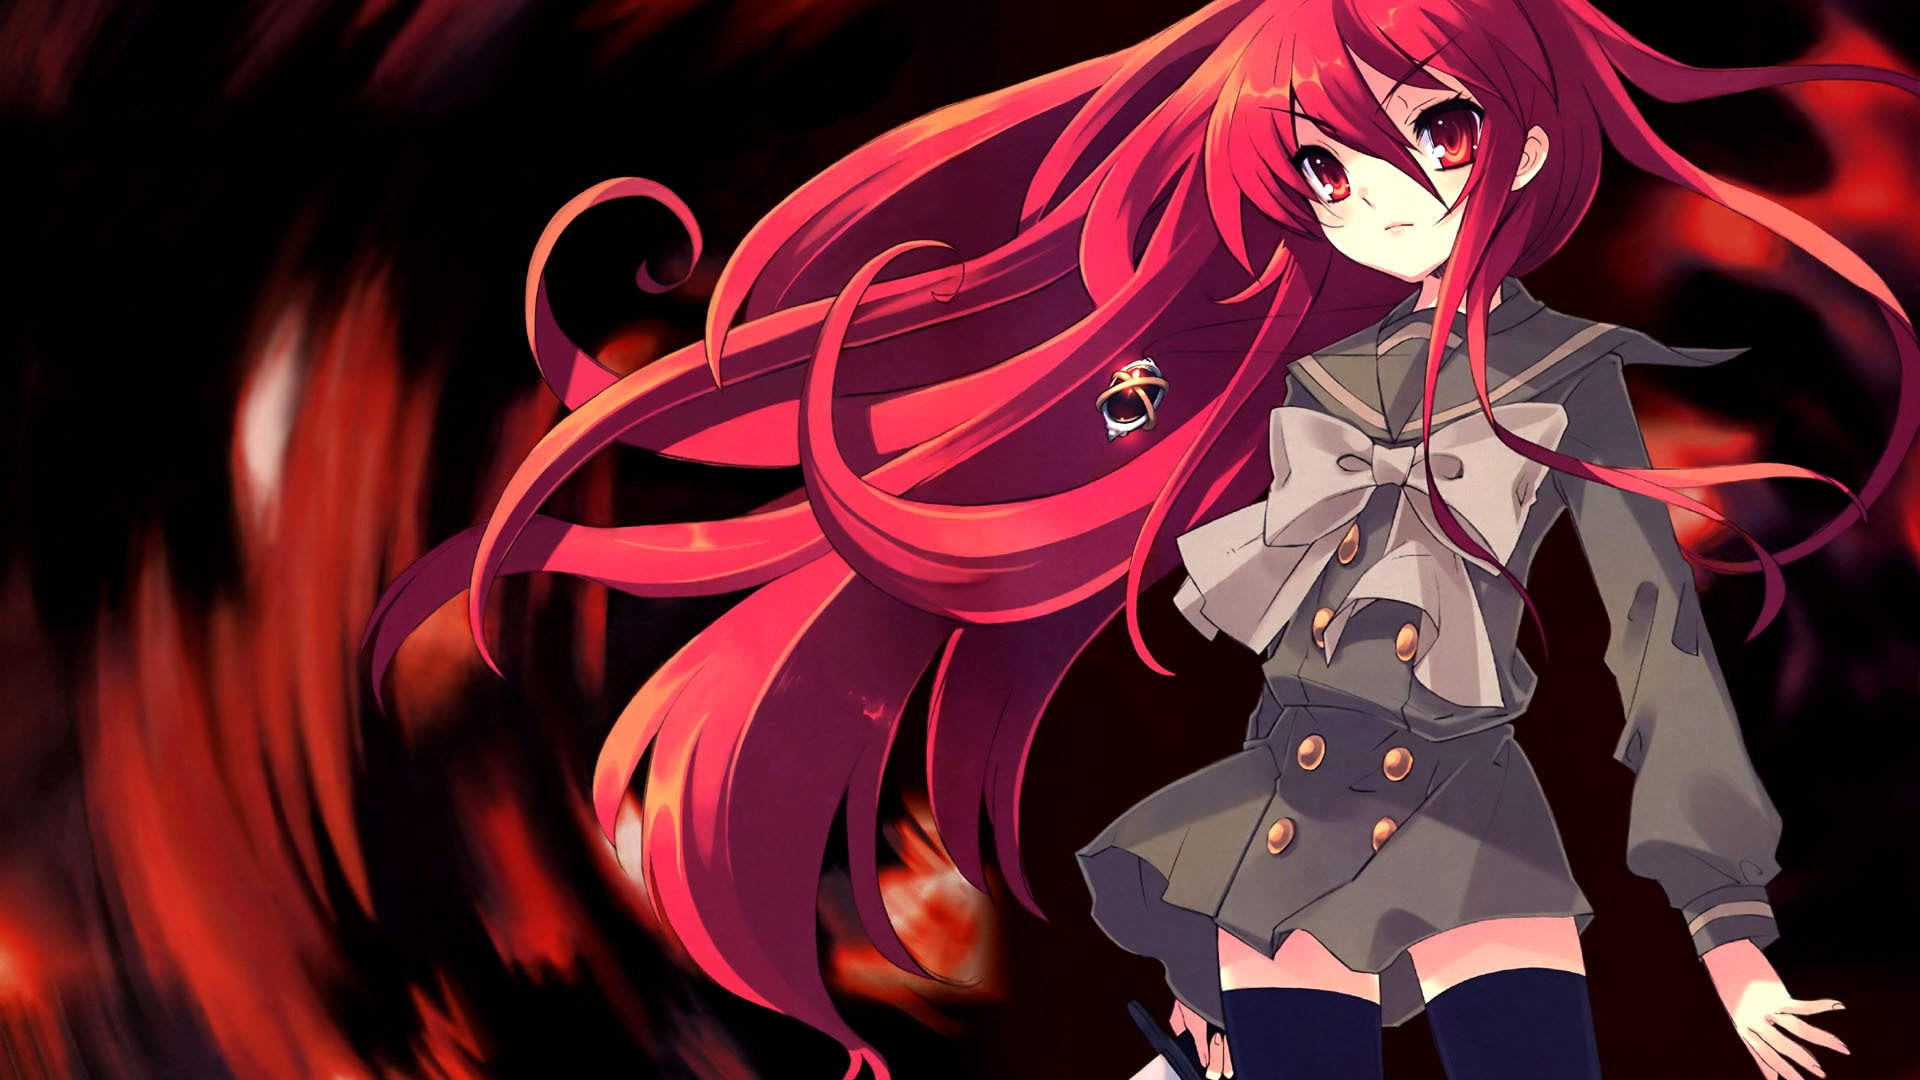 Free Shakugan No Shana high quality wallpaper ID:284709 for hd 1080p computer